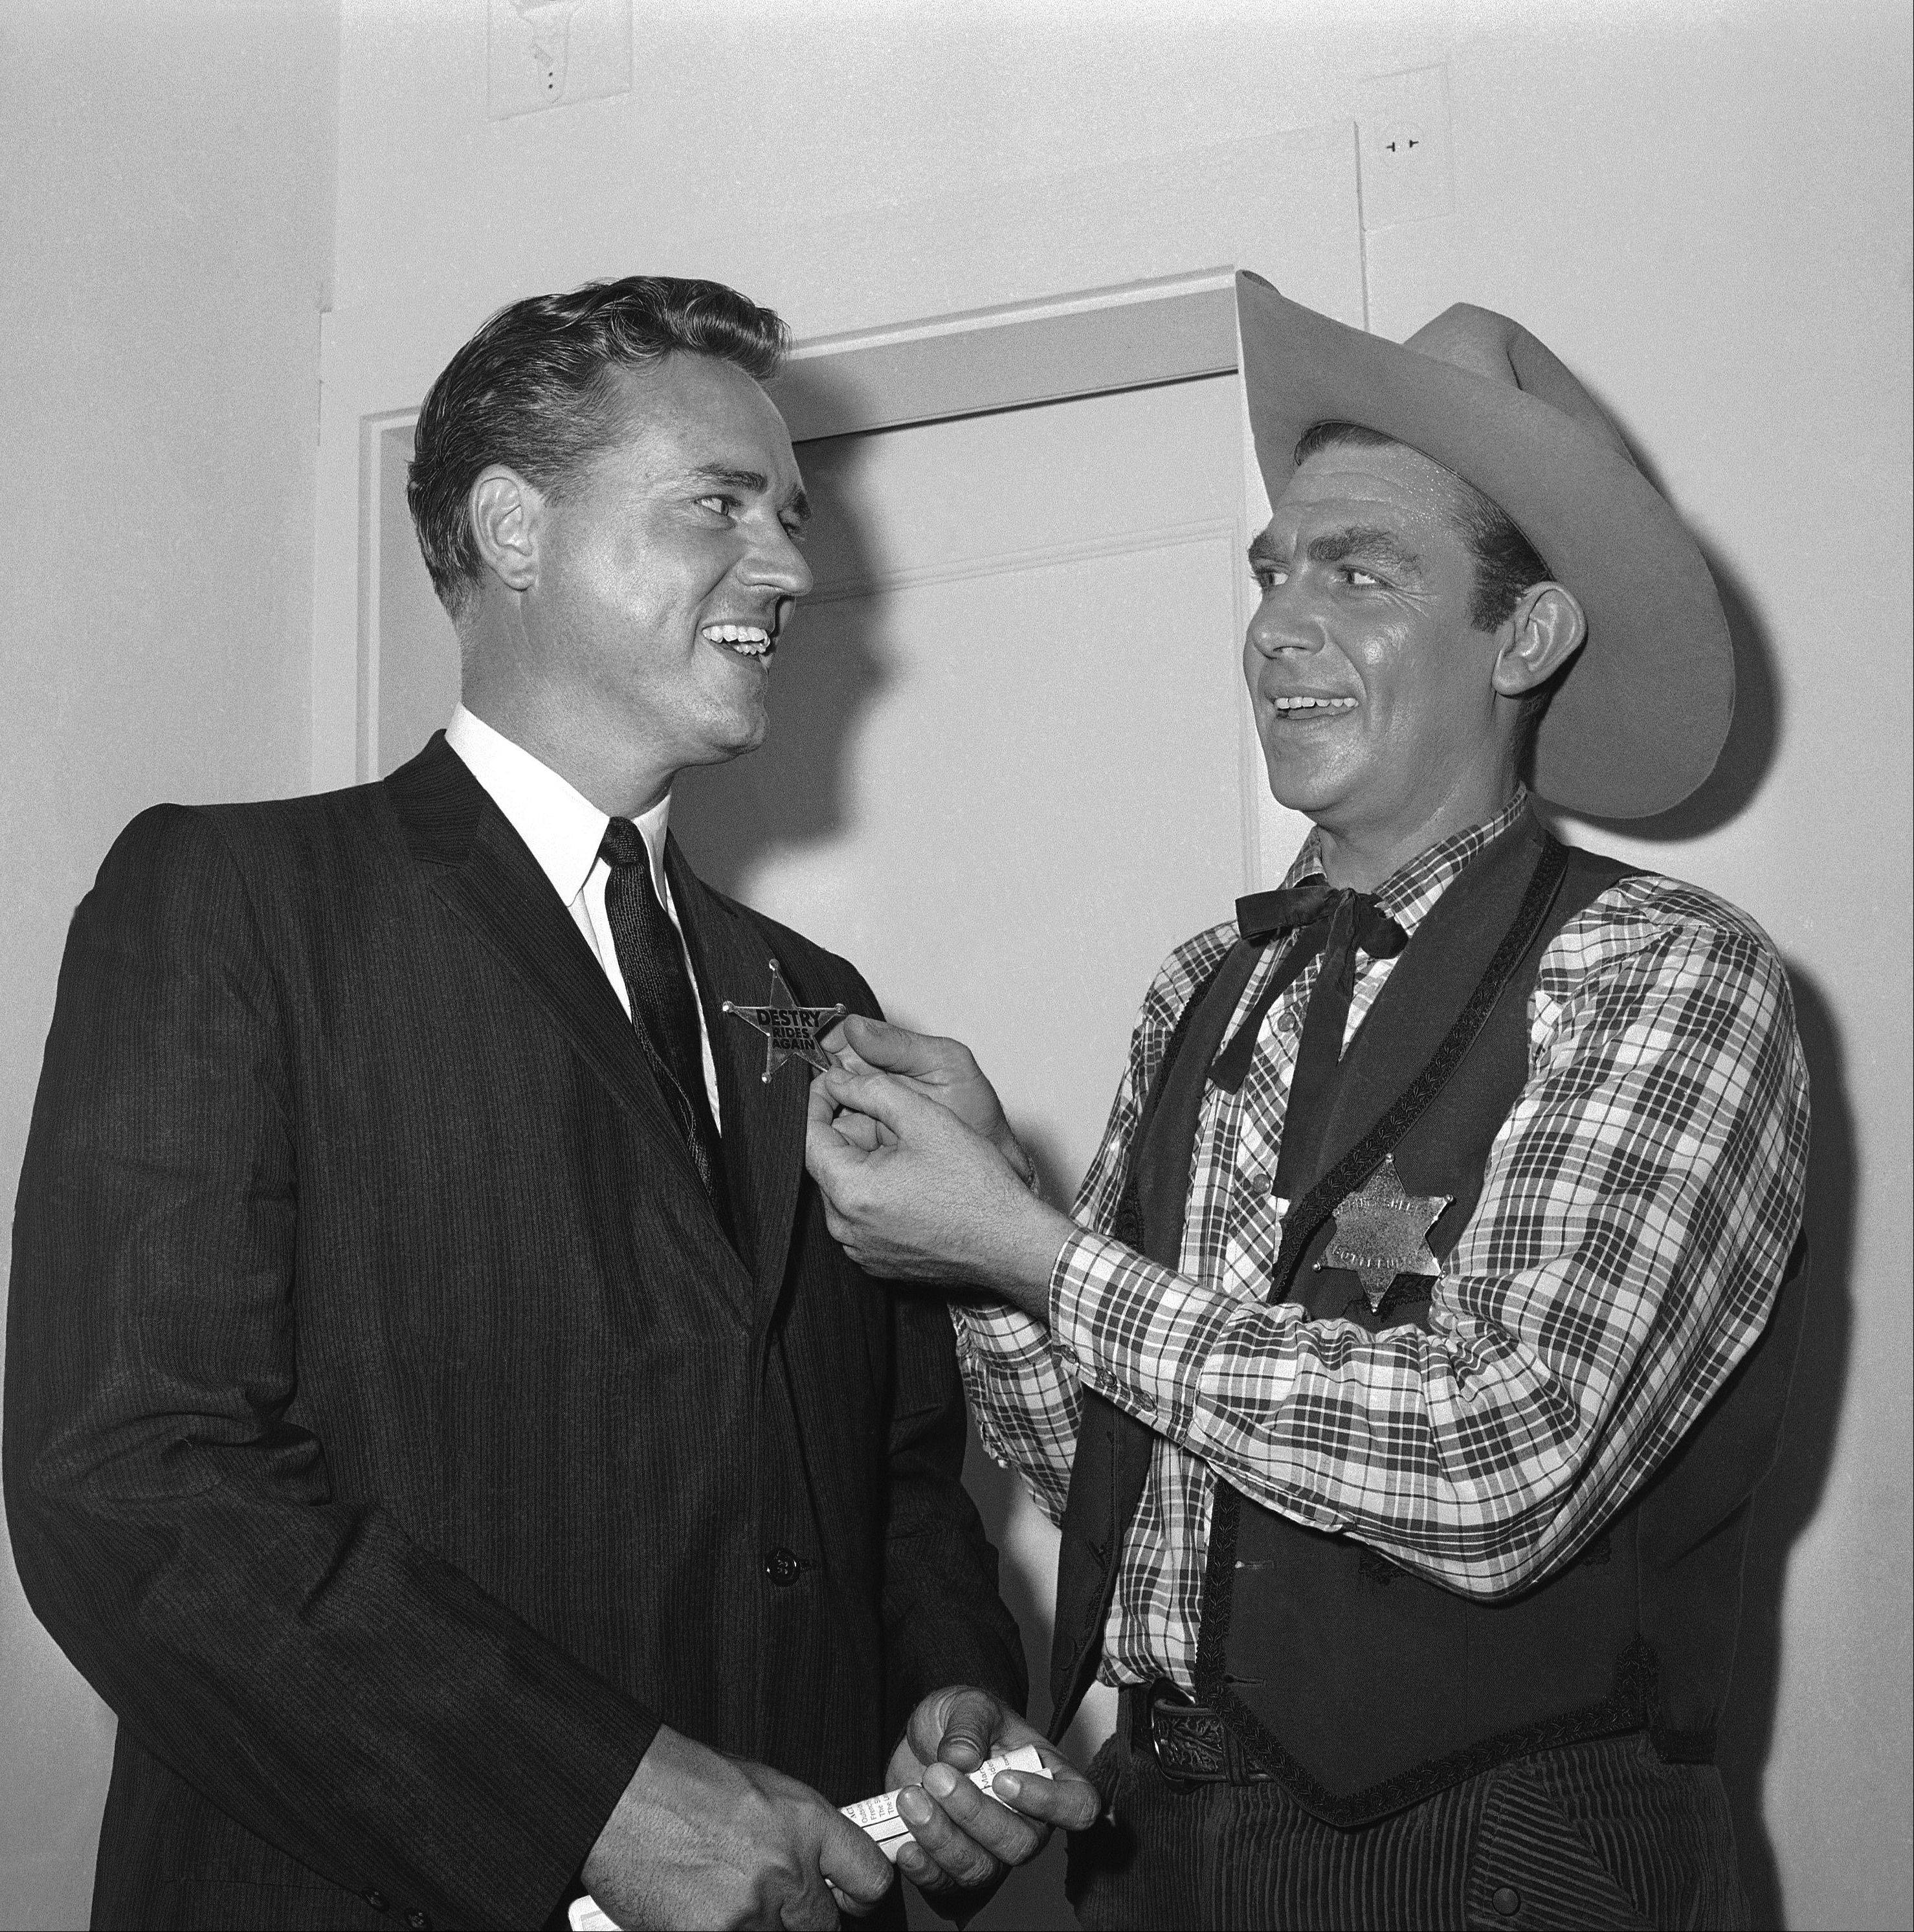 Andy Griffith, right, star of the Broadway musical? Destry Rides Again? and a native of North Carolina, pins a badge on the lapel of Ernest F. Hollings, governor of South Carolina, after performance at night on May 21, 1959 in the Imperial Theater, New York.